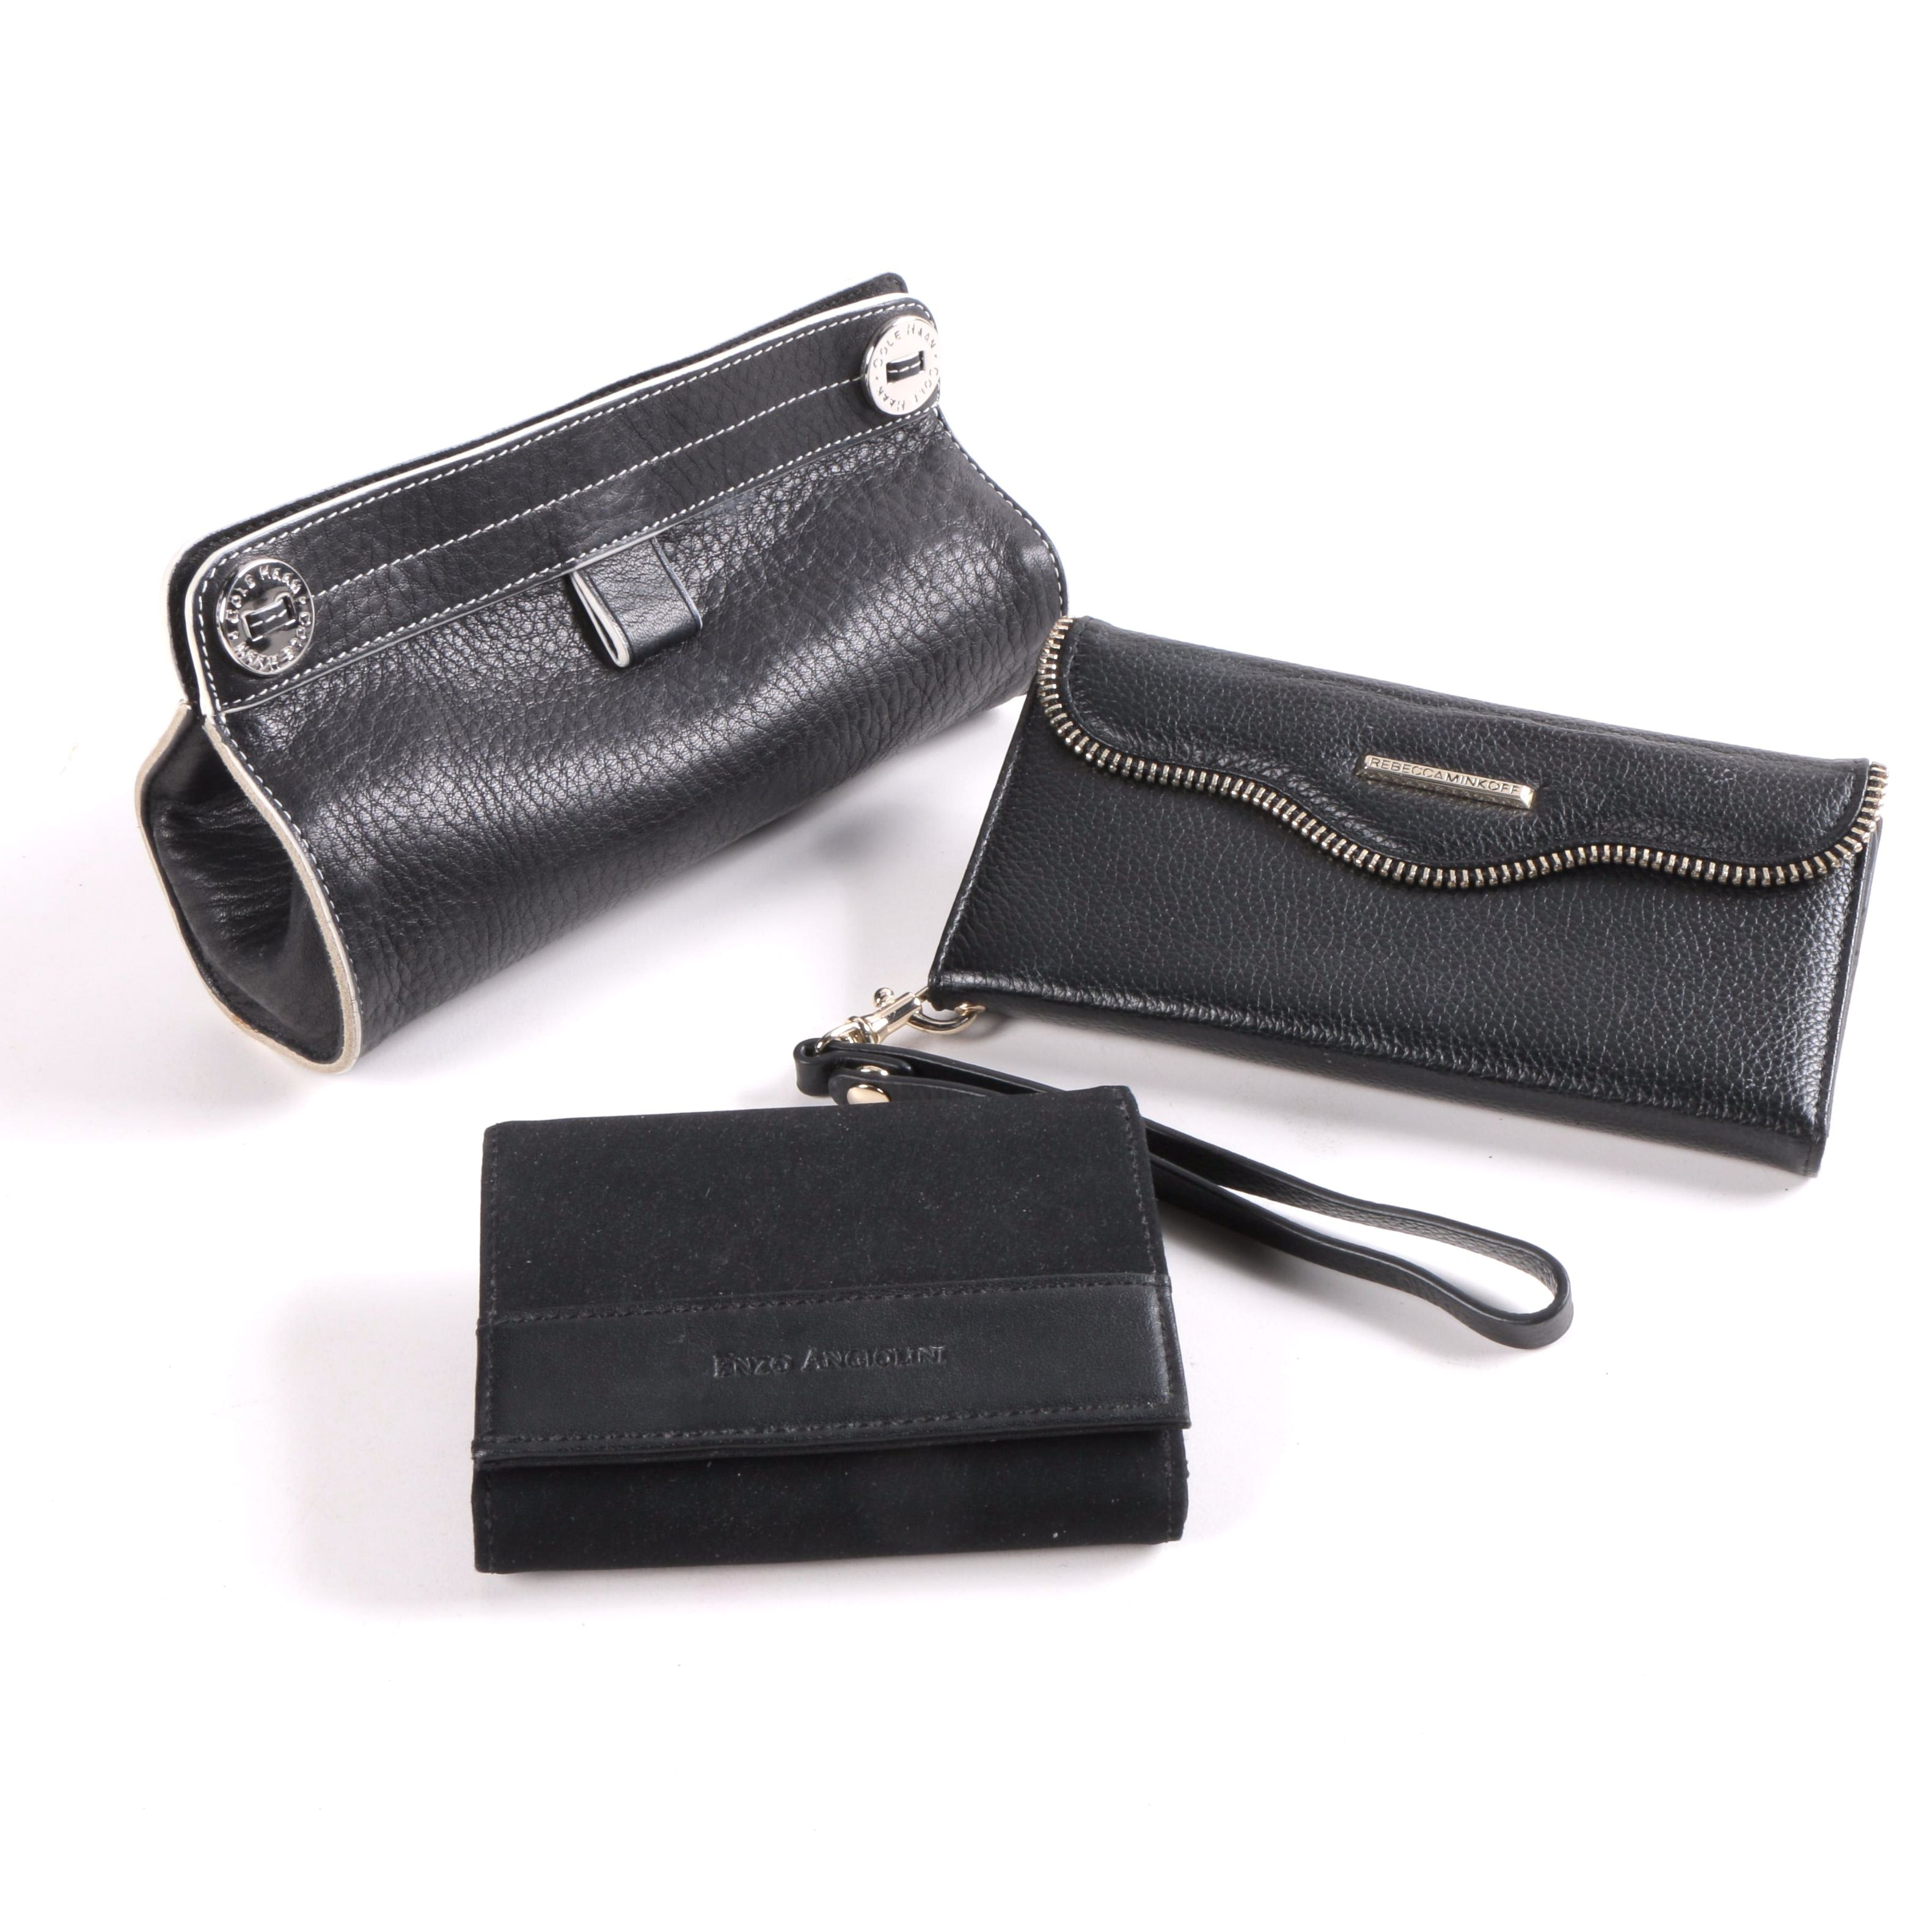 Wallet and Accessories Including Rebecca Minkoff